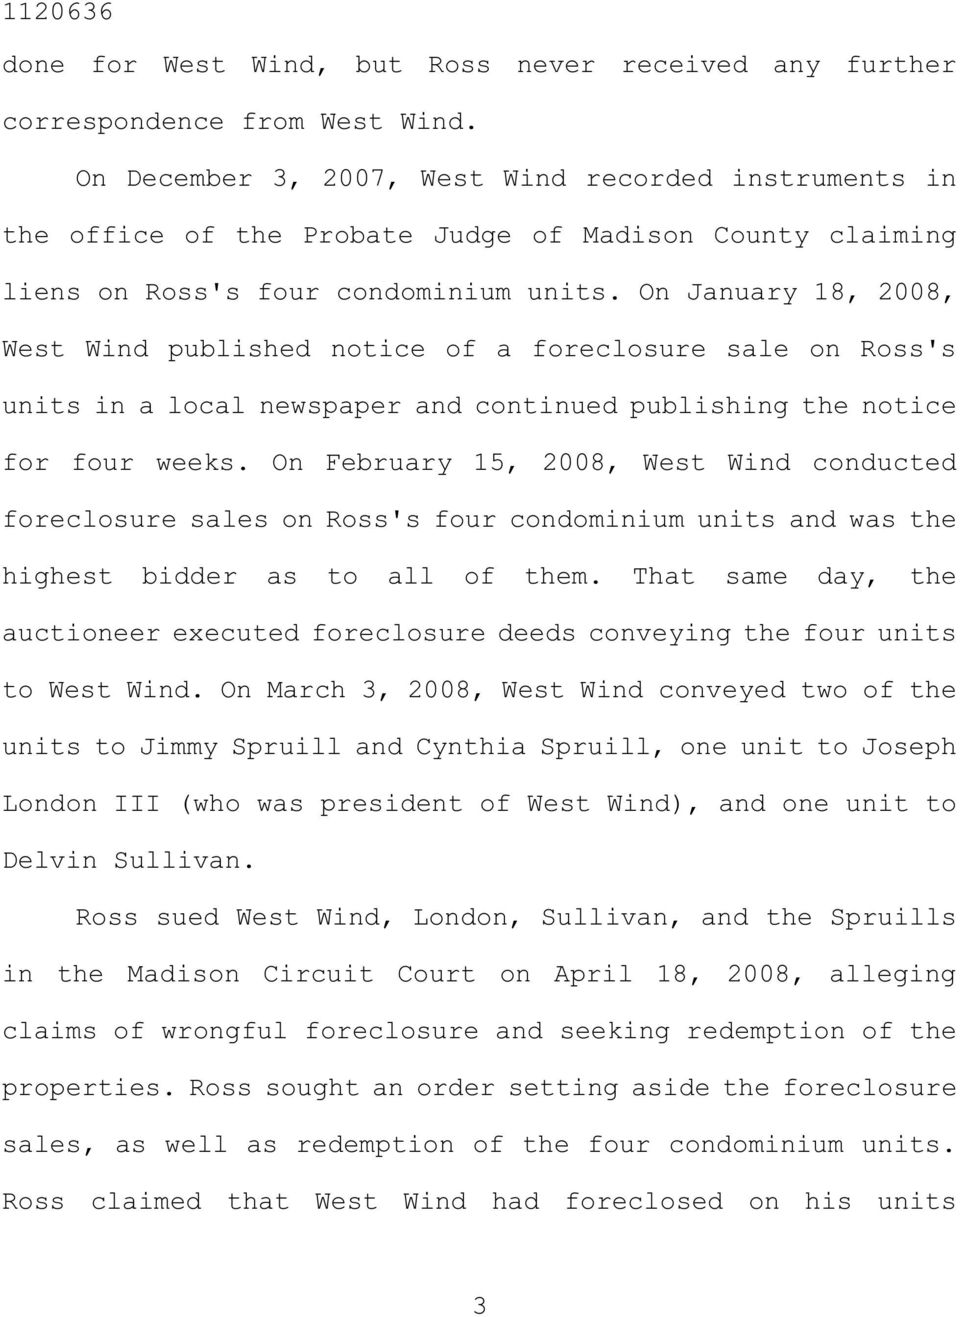 On January 18, 2008, West Wind published notice of a foreclosure sale on Ross's units in a local newspaper and continued publishing the notice for four weeks.